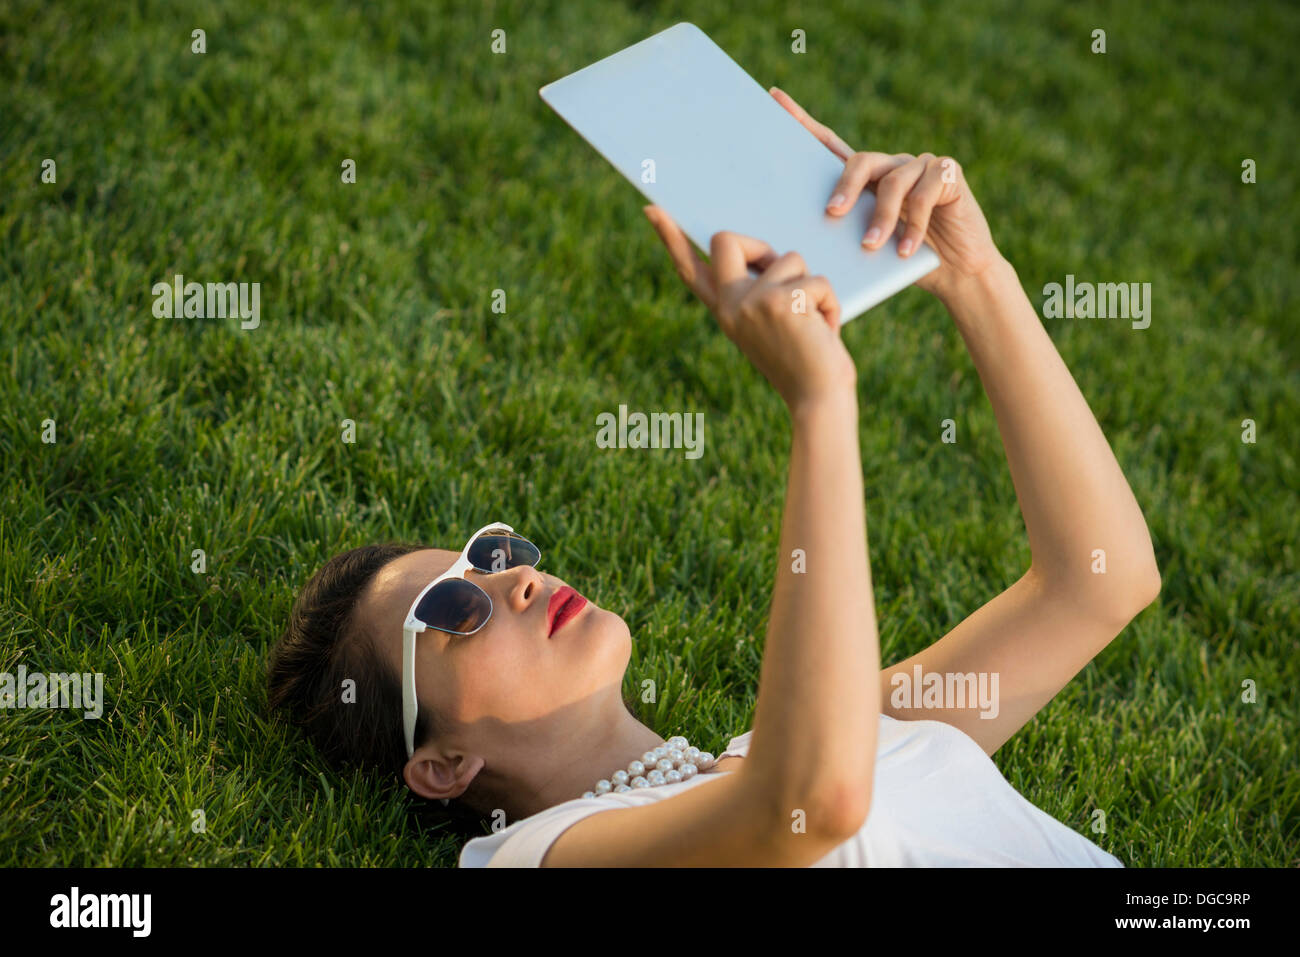 Woman lying in park using digital tablet Photo Stock